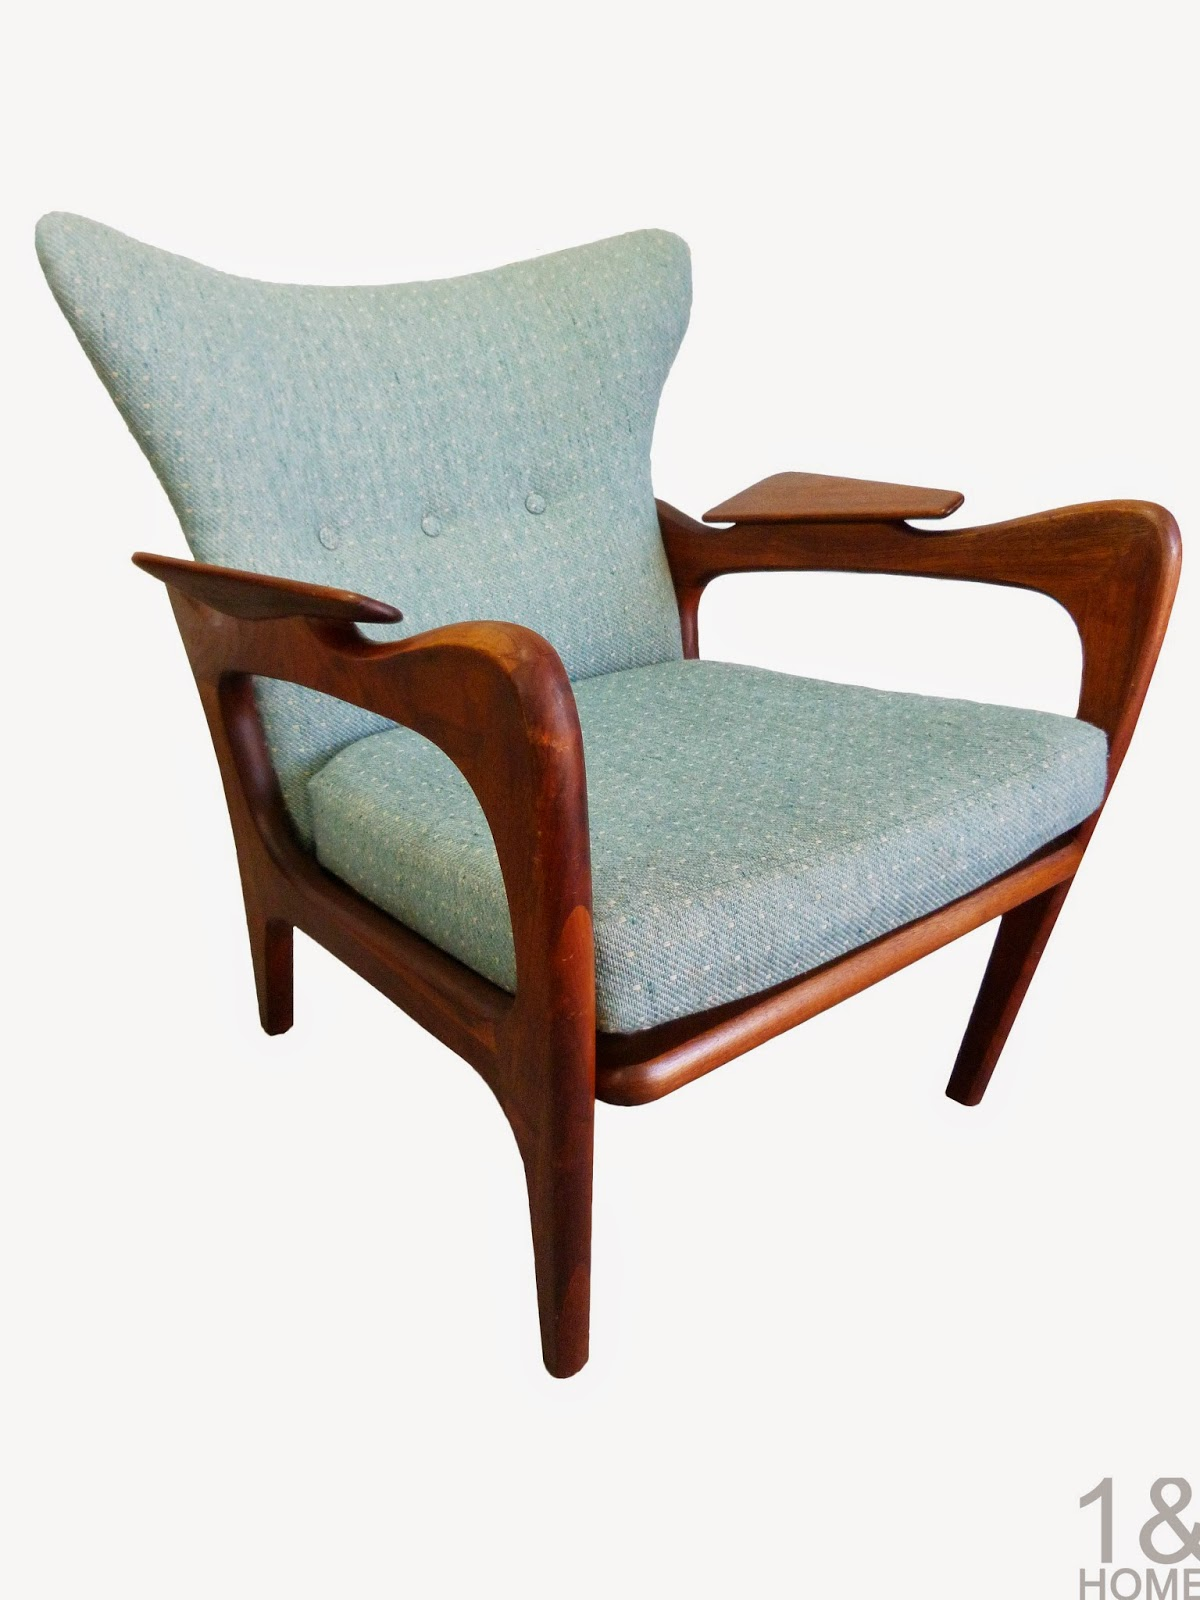 Adrian Pearsall Lounge Chair Adult Saucer Modern Mid Century Danish Vintage Furniture Shop Used